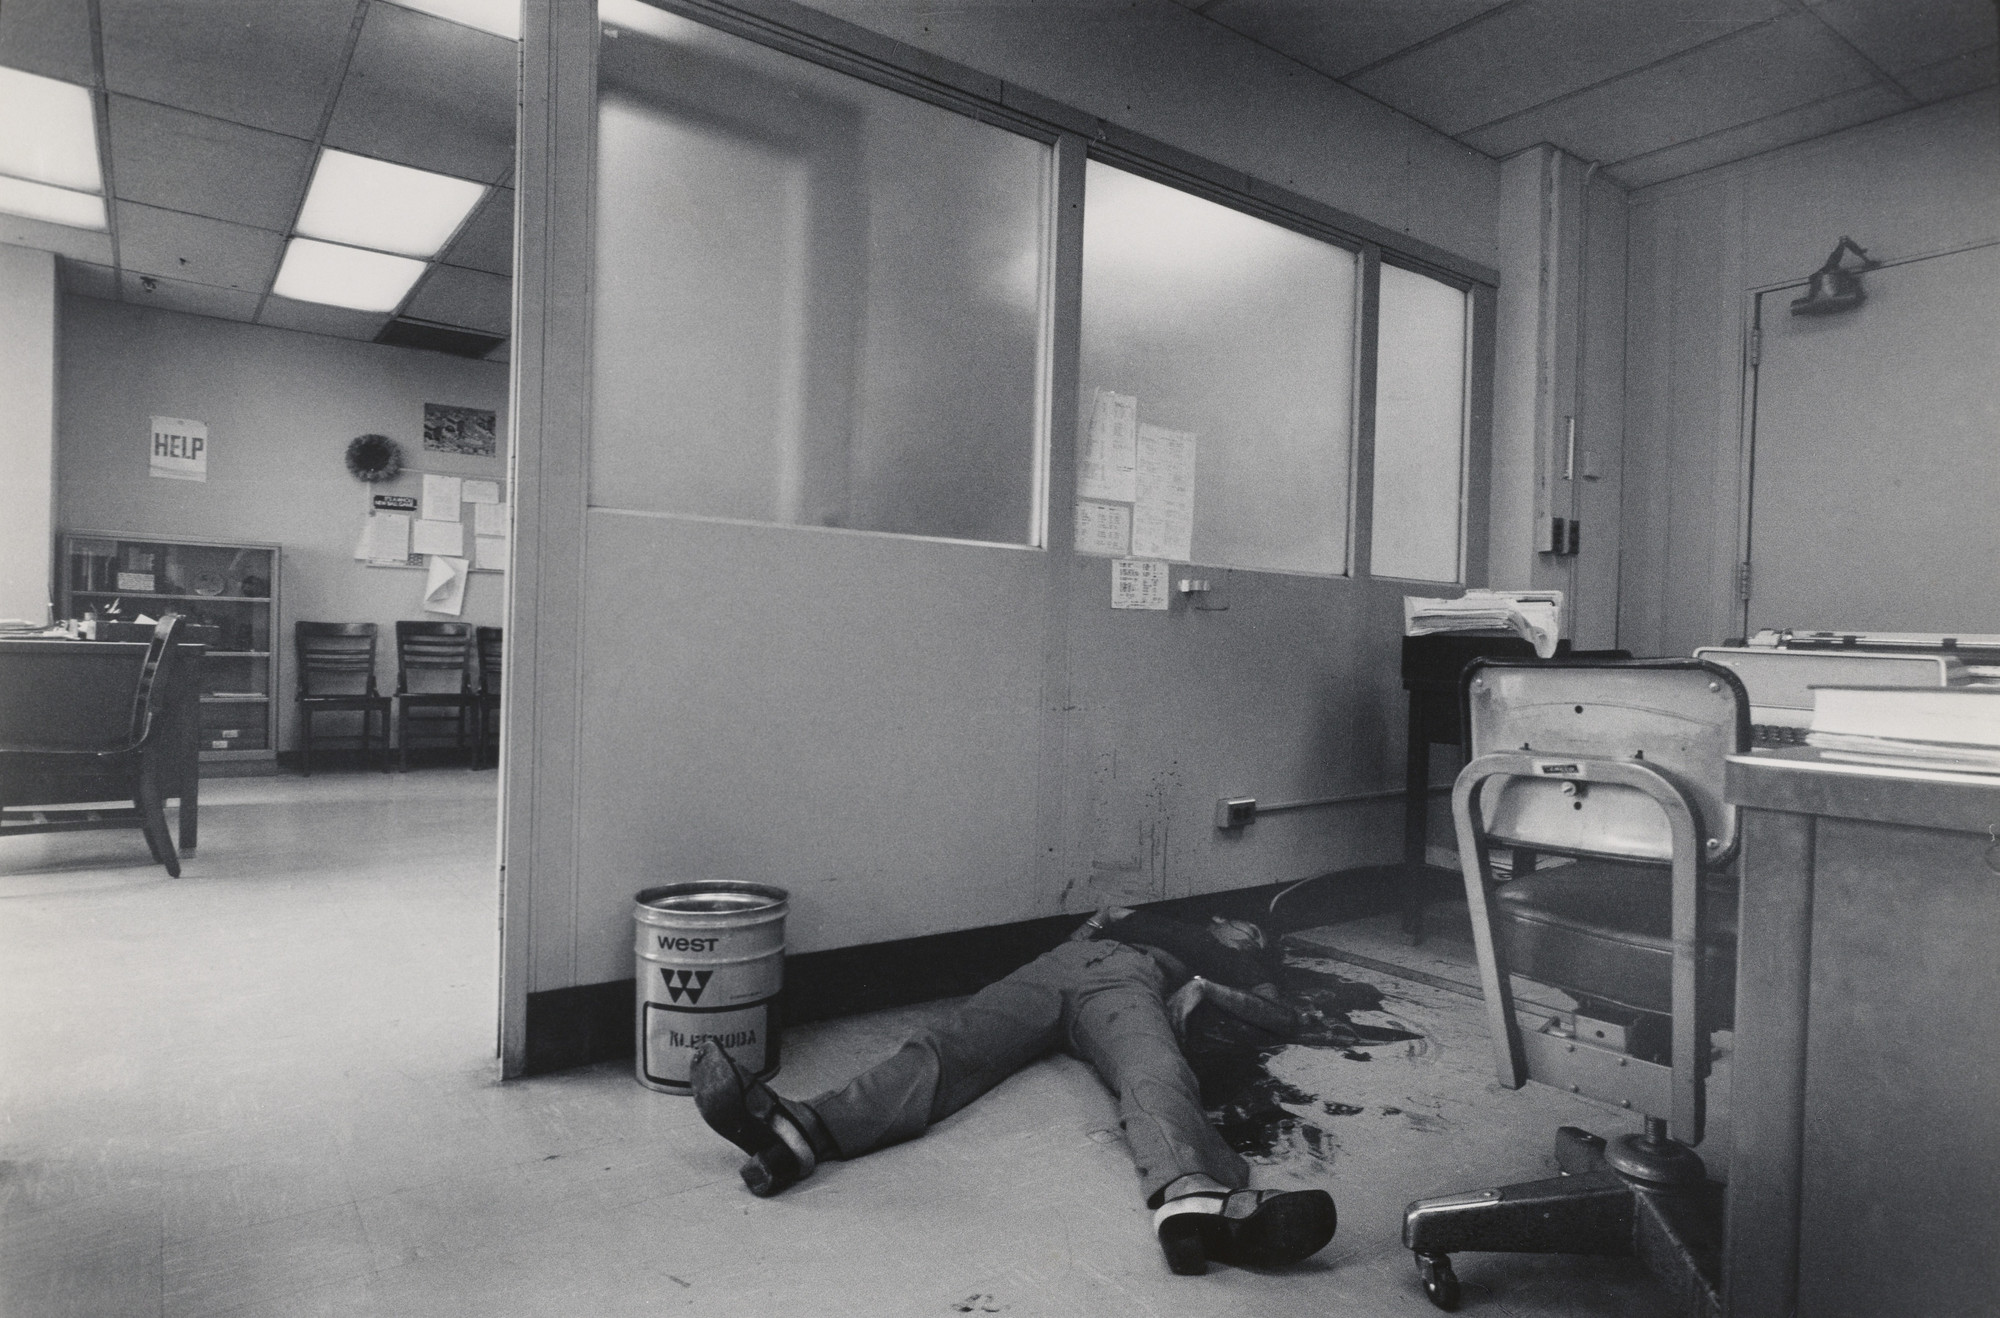 Leonard Freed. New York: Woman killed by her boyfriend at her place of employment. 1972